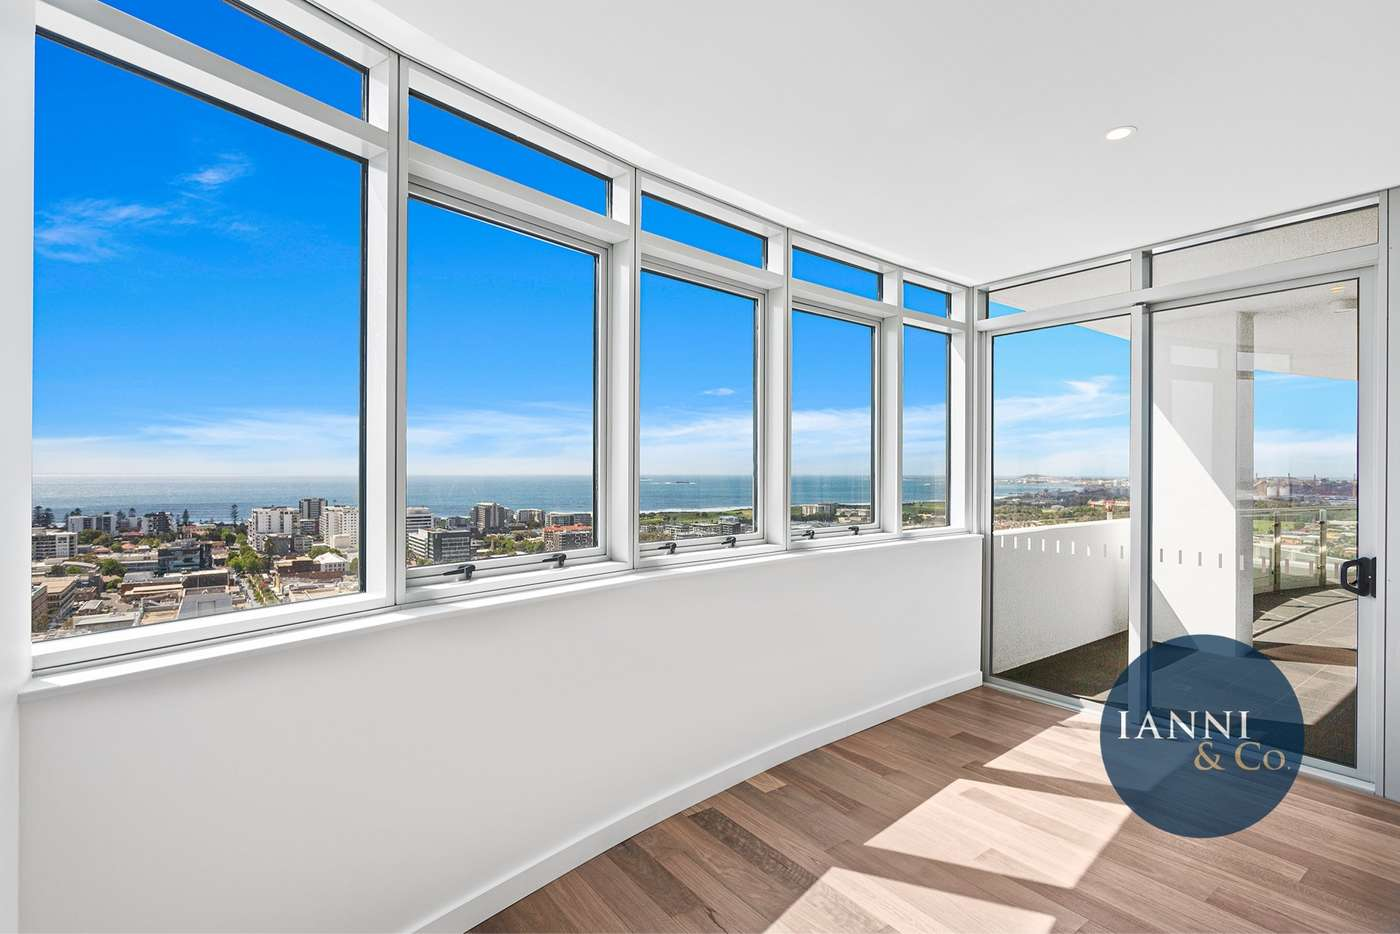 Main view of Homely apartment listing, 1802/10-18 Regent Street, Wollongong NSW 2500